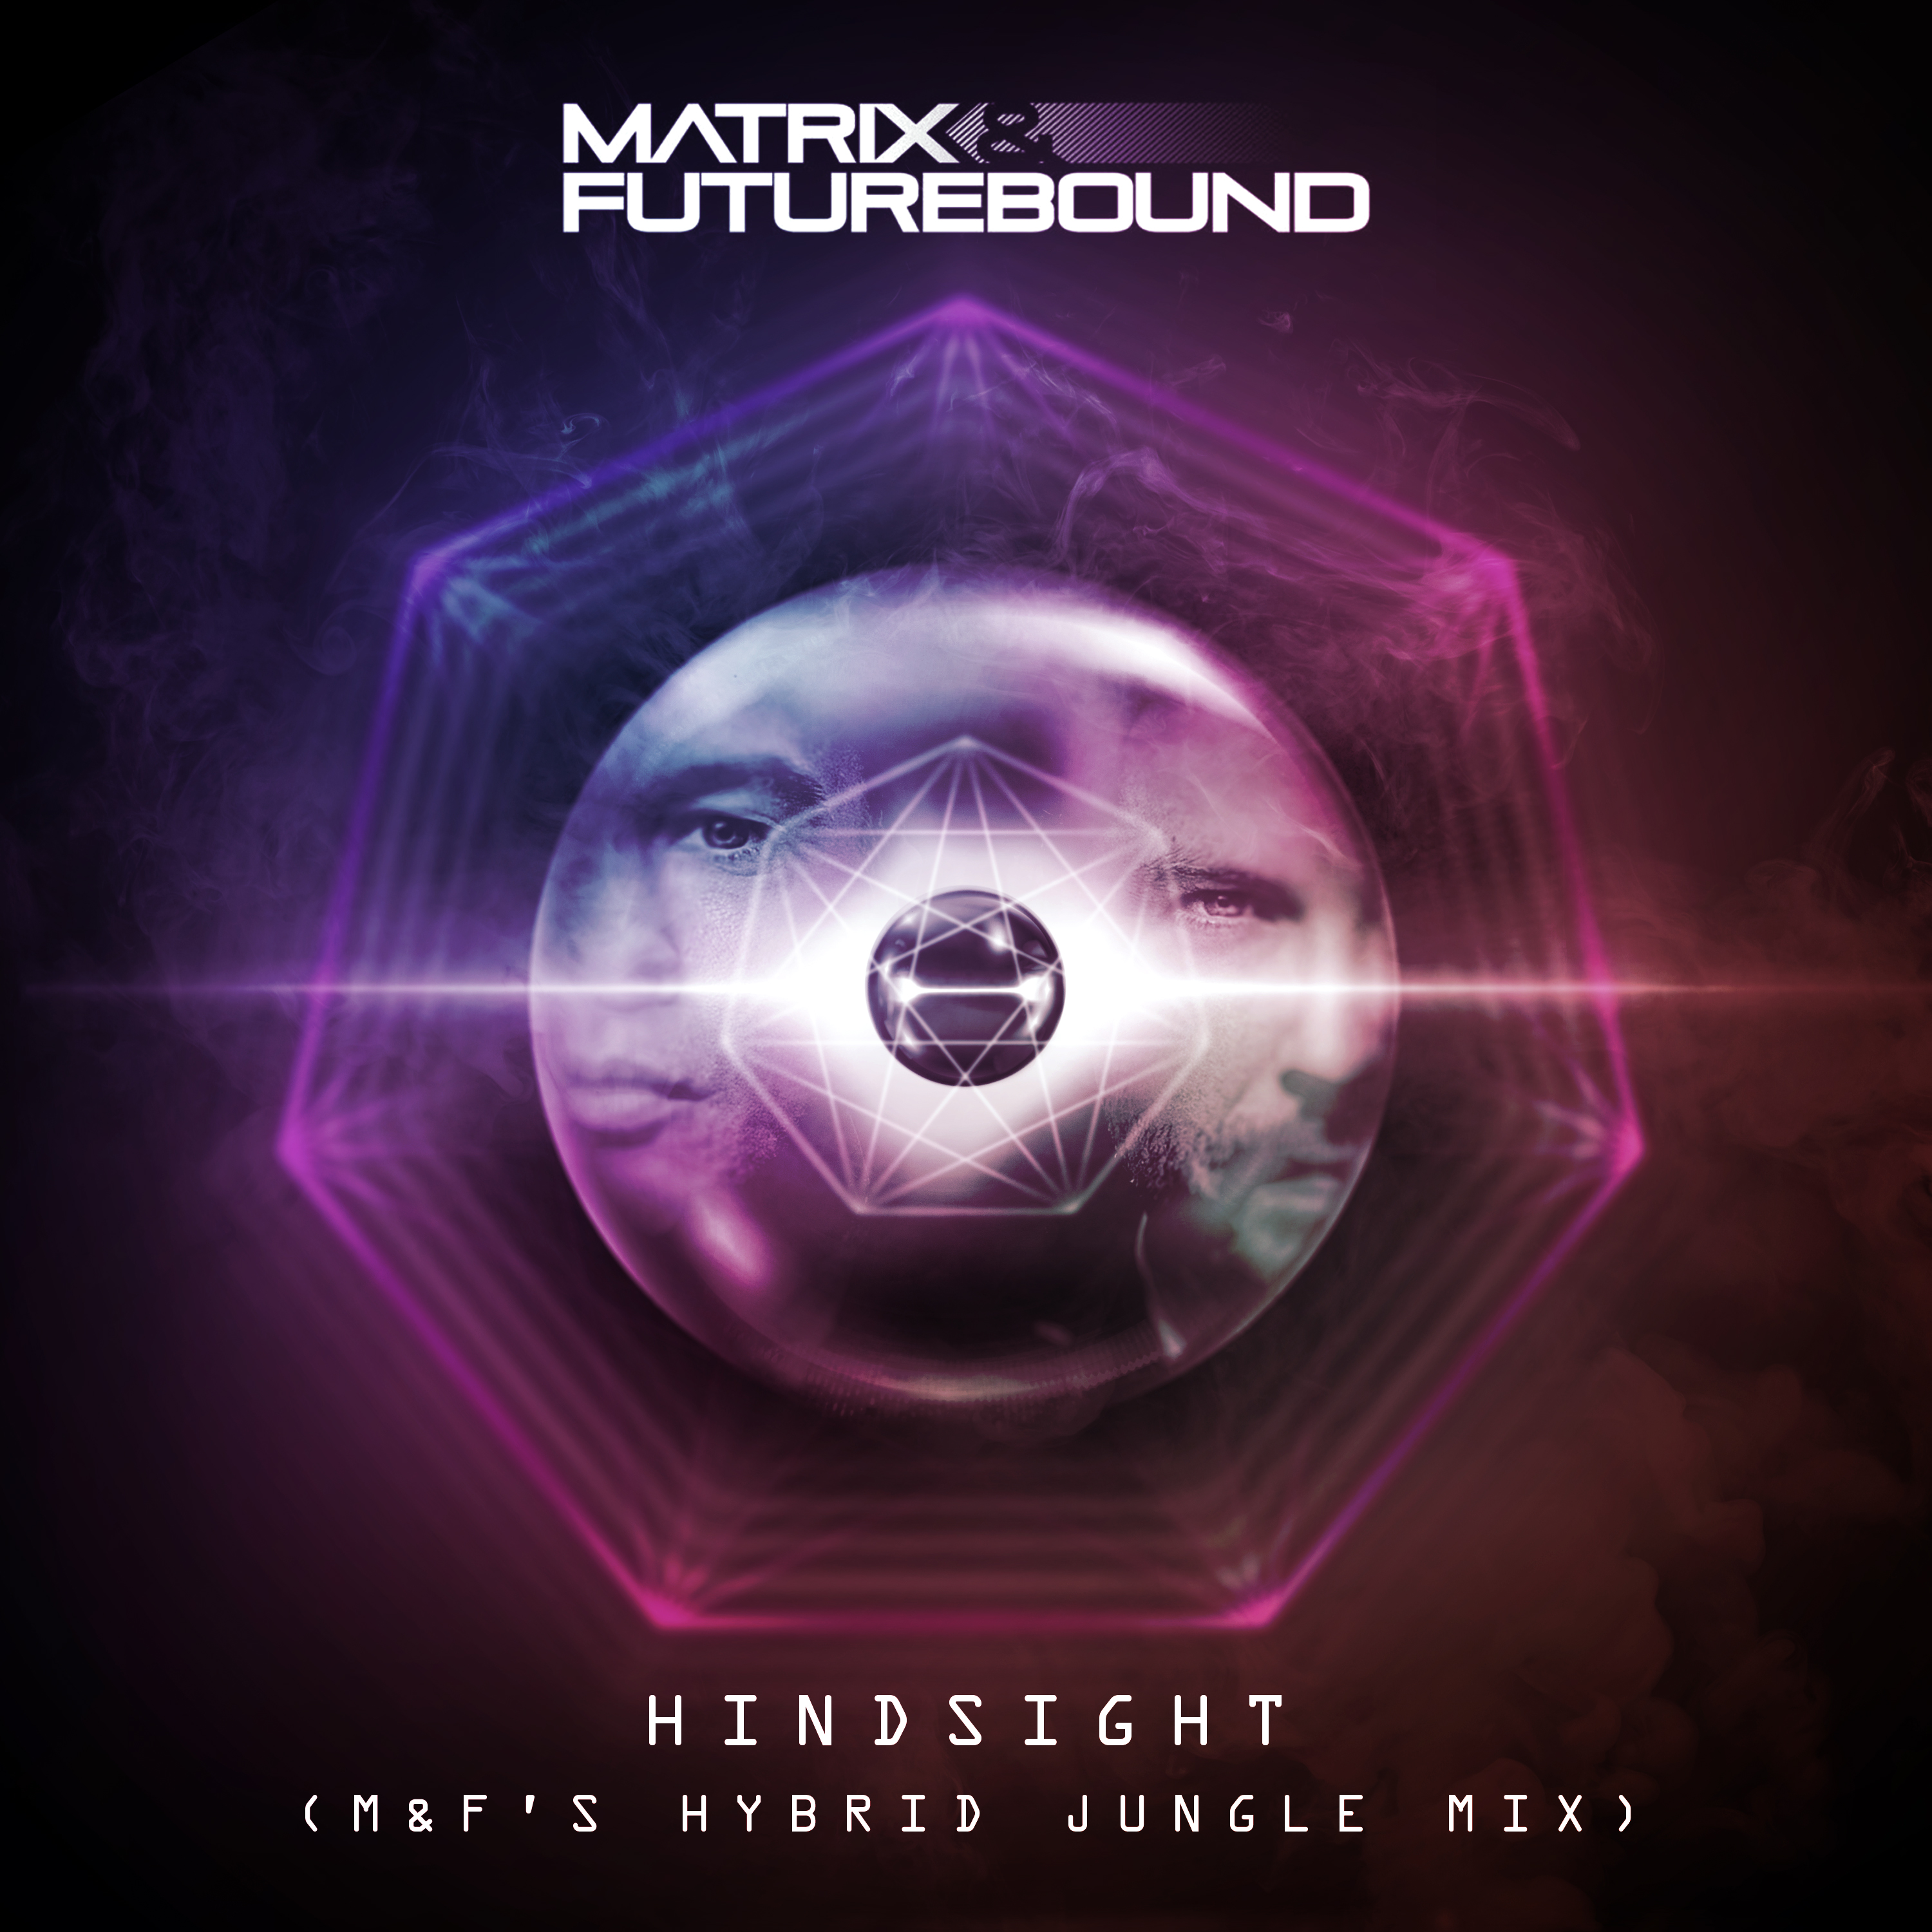 Matrix & Futurebound – Hindsight (M&F Hybrid Jungle Mix) [MTRVPR030]